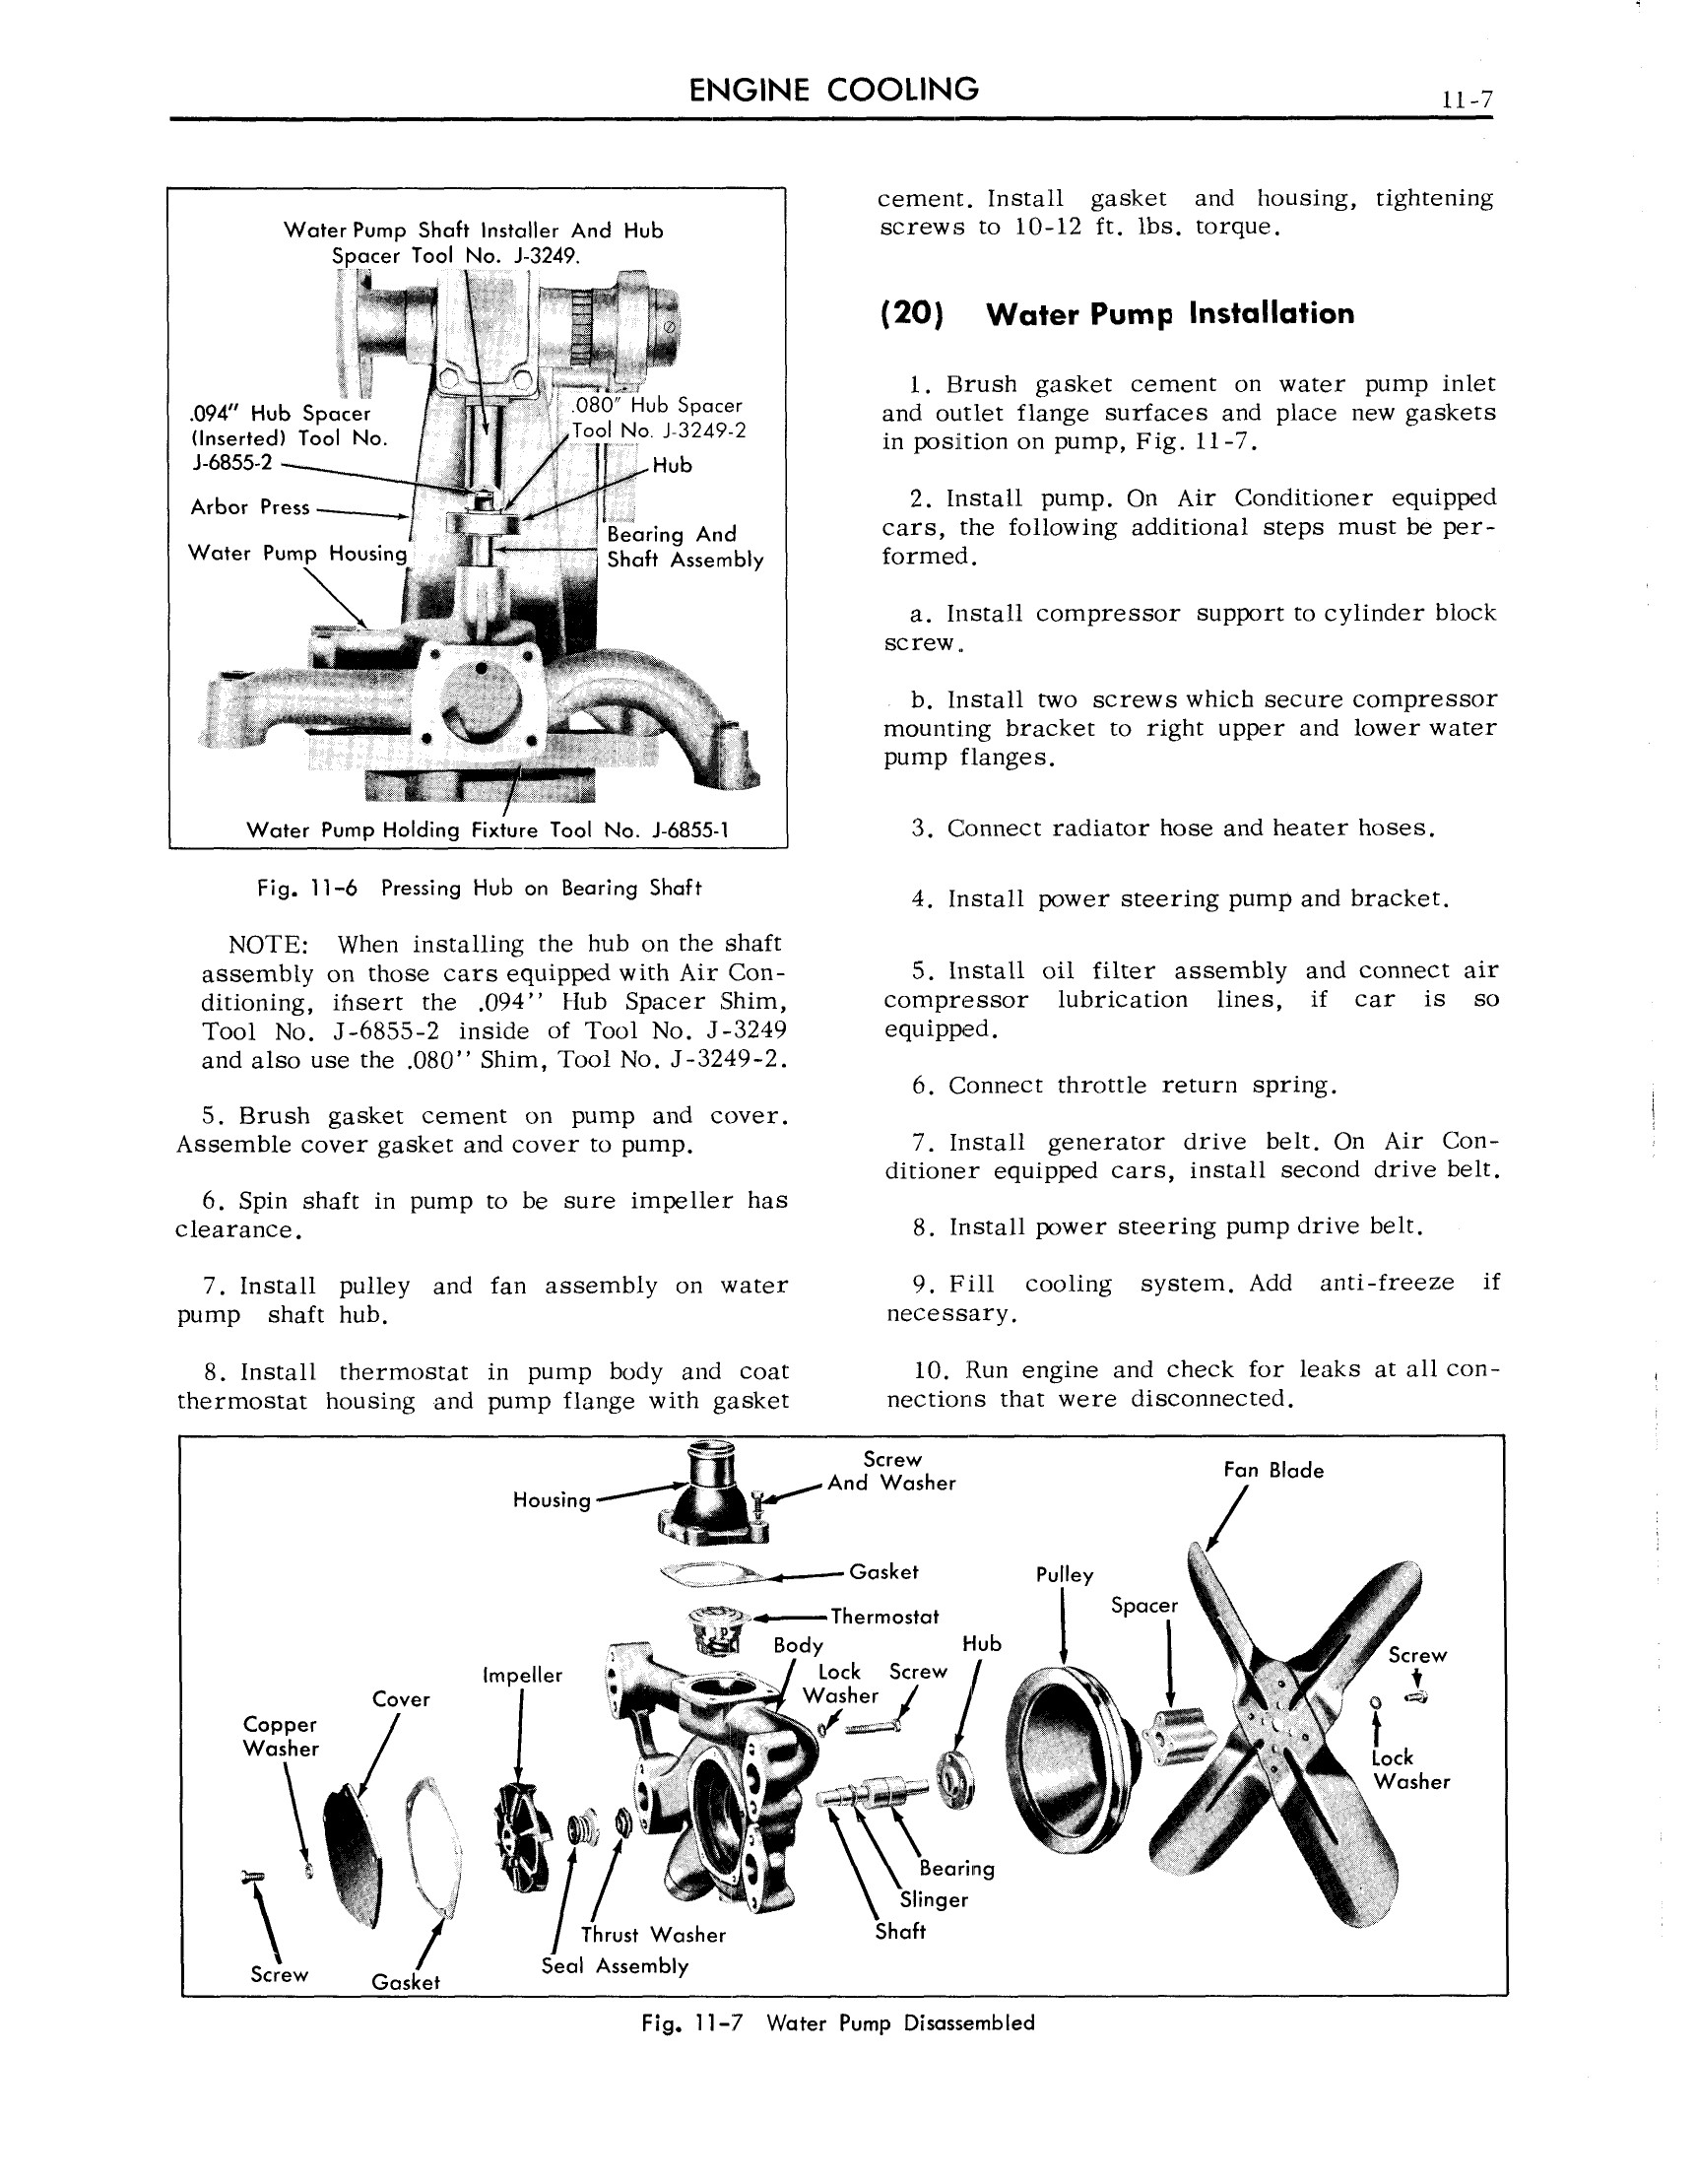 1959 Cadillac Shop Manual- Cooling Systems Page 7 of 9